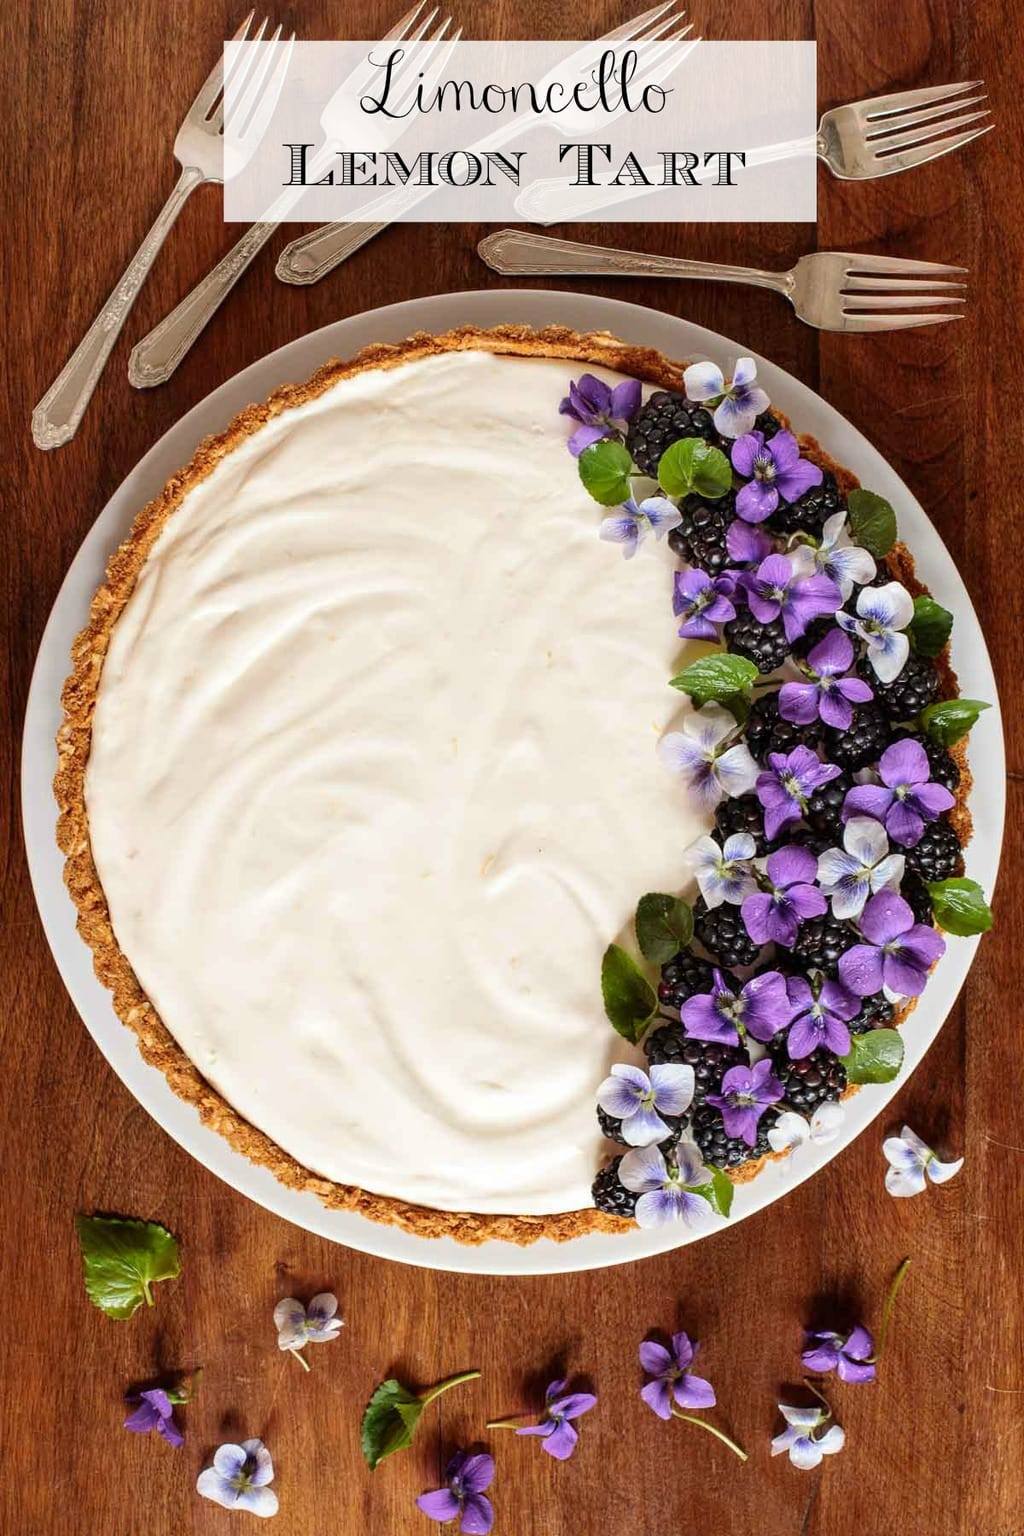 A modern update to an old-fashioned icebox torte, this Limoncello Lemon Tart is melt-in-your-mouth delicious - with a few fabulous gourmet touches! #lemontart, #easylemontart, #limoncellorecipe, #edibleflowers